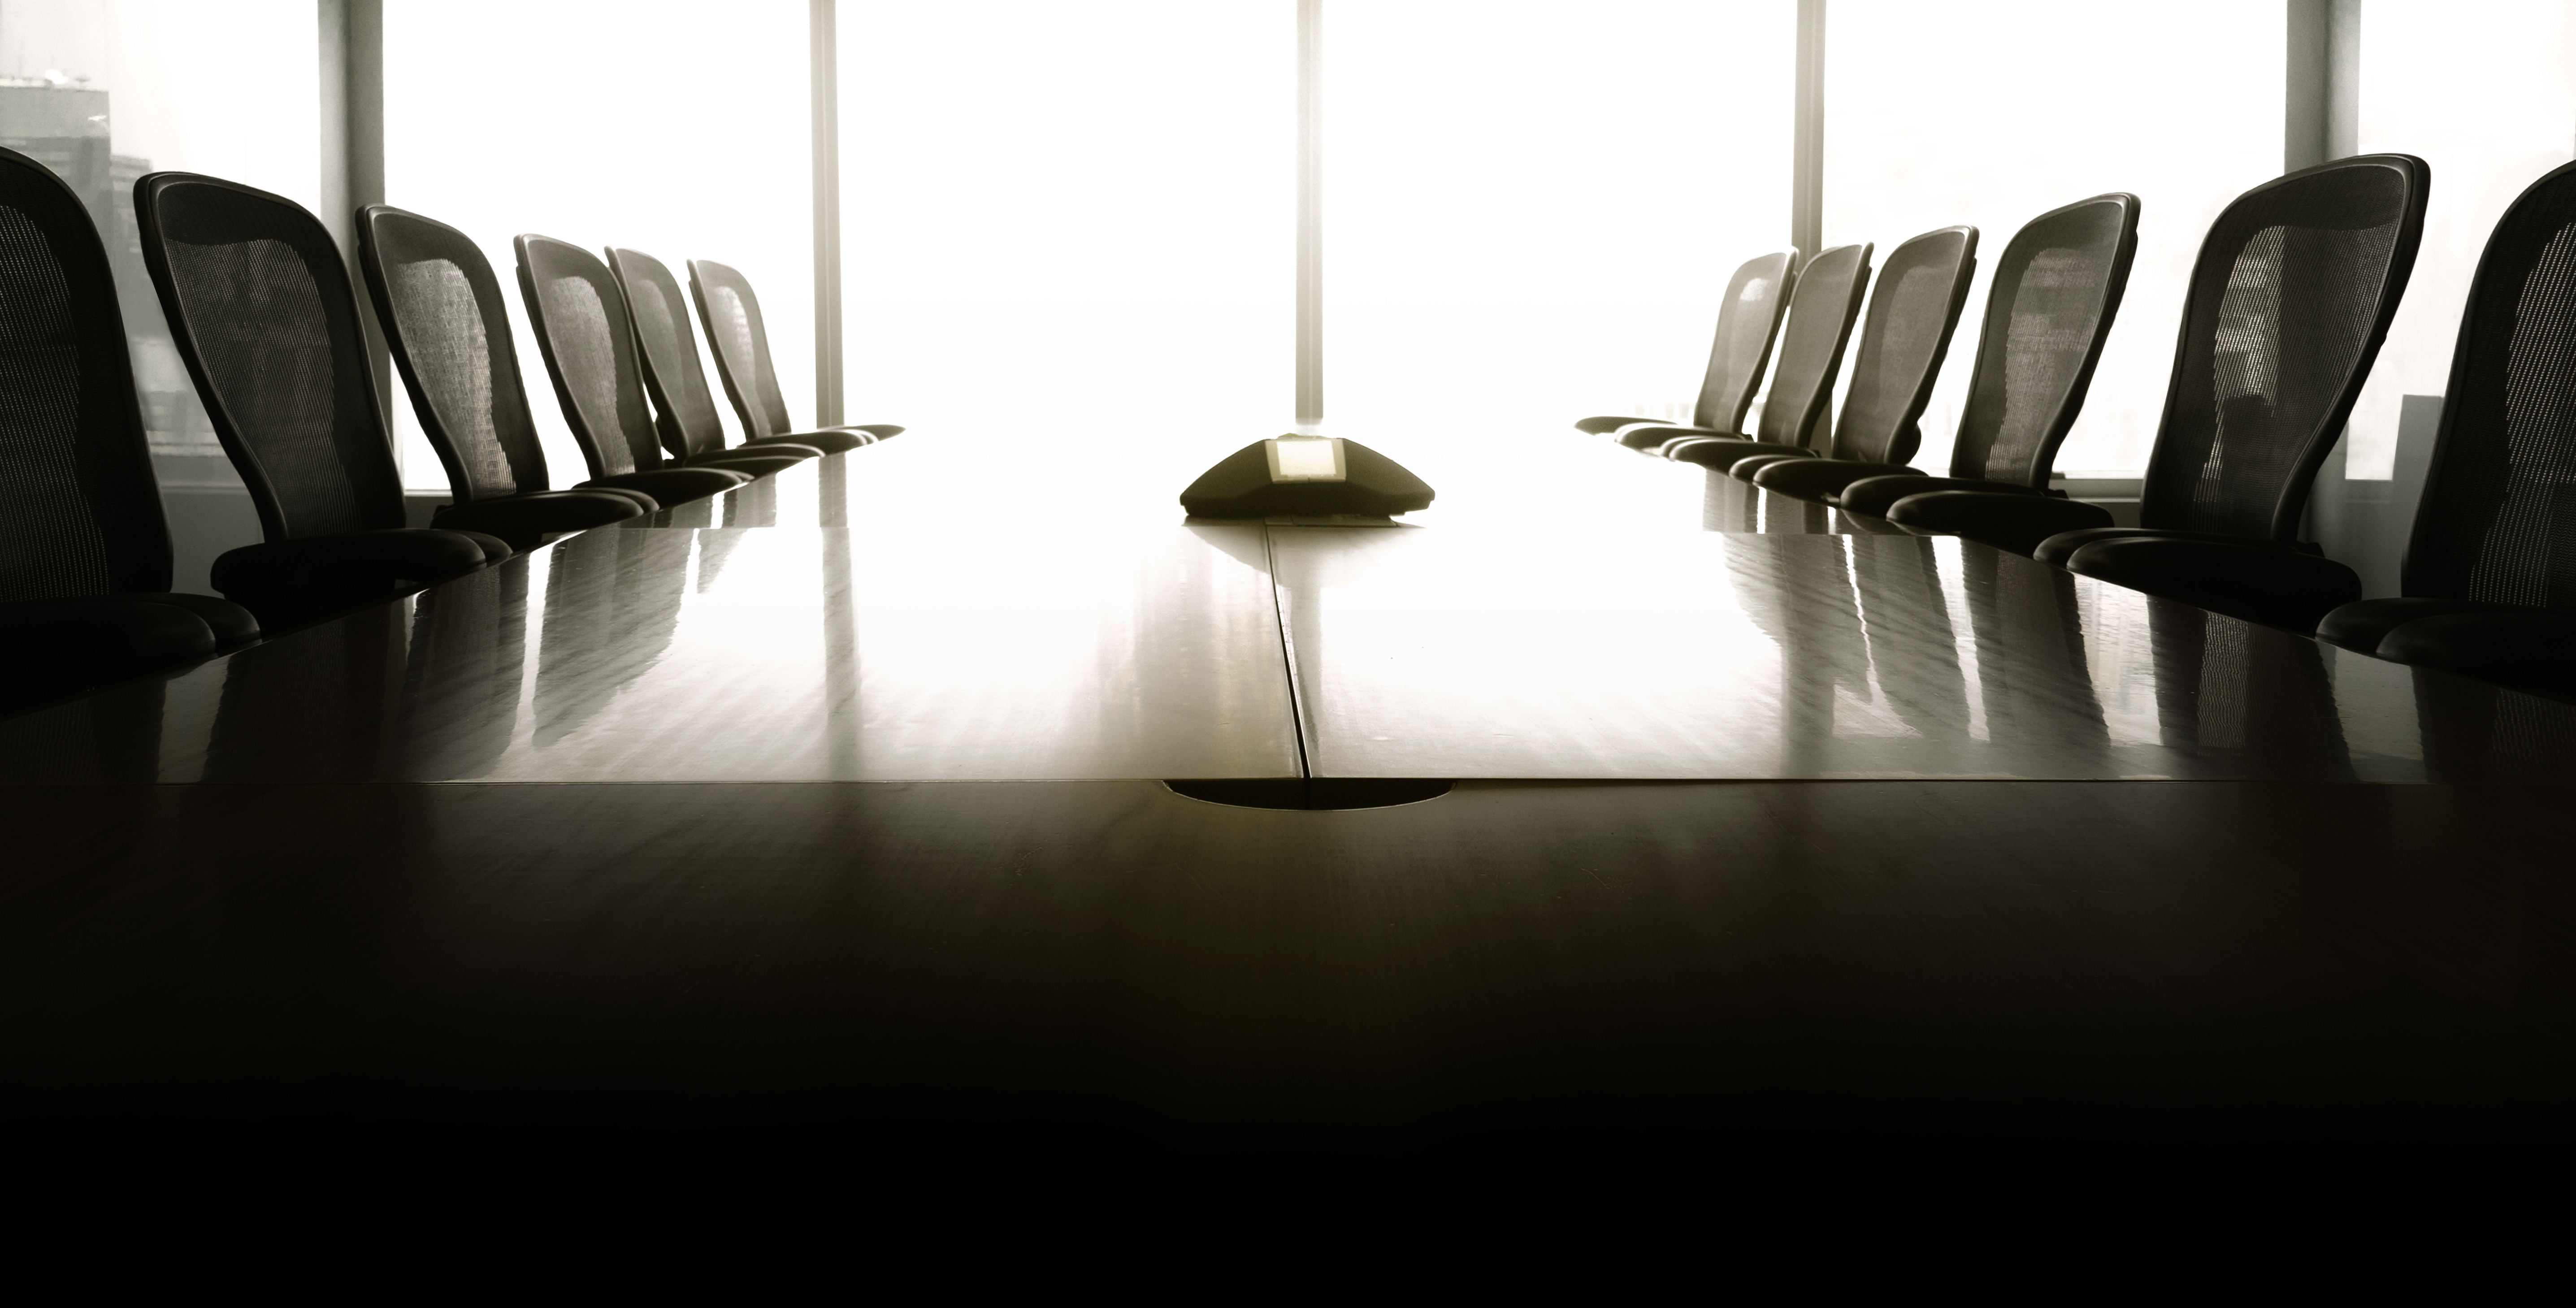 empty investment banking conference room